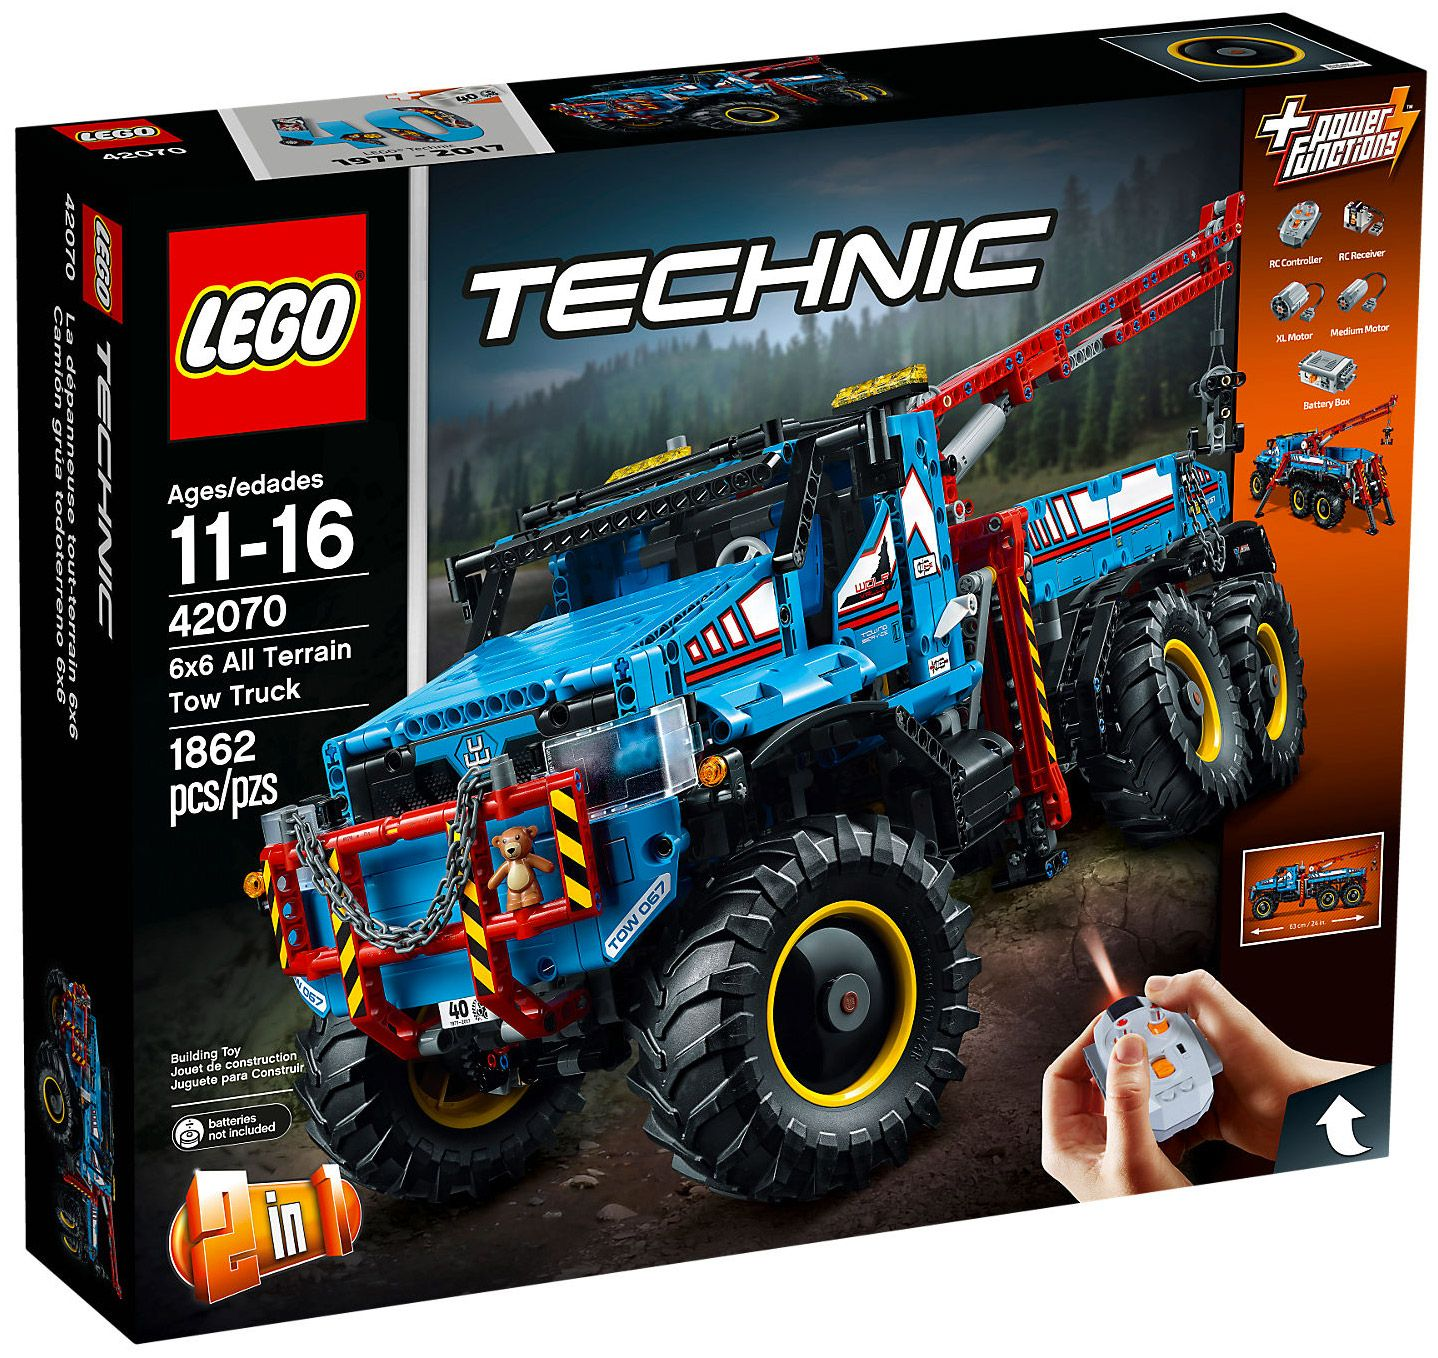 Pin lego 60032 city the lego summer wave in official images on - Lego Technic 42070 La D Panneuse Tout Terrain 6x6 Ao T 2017